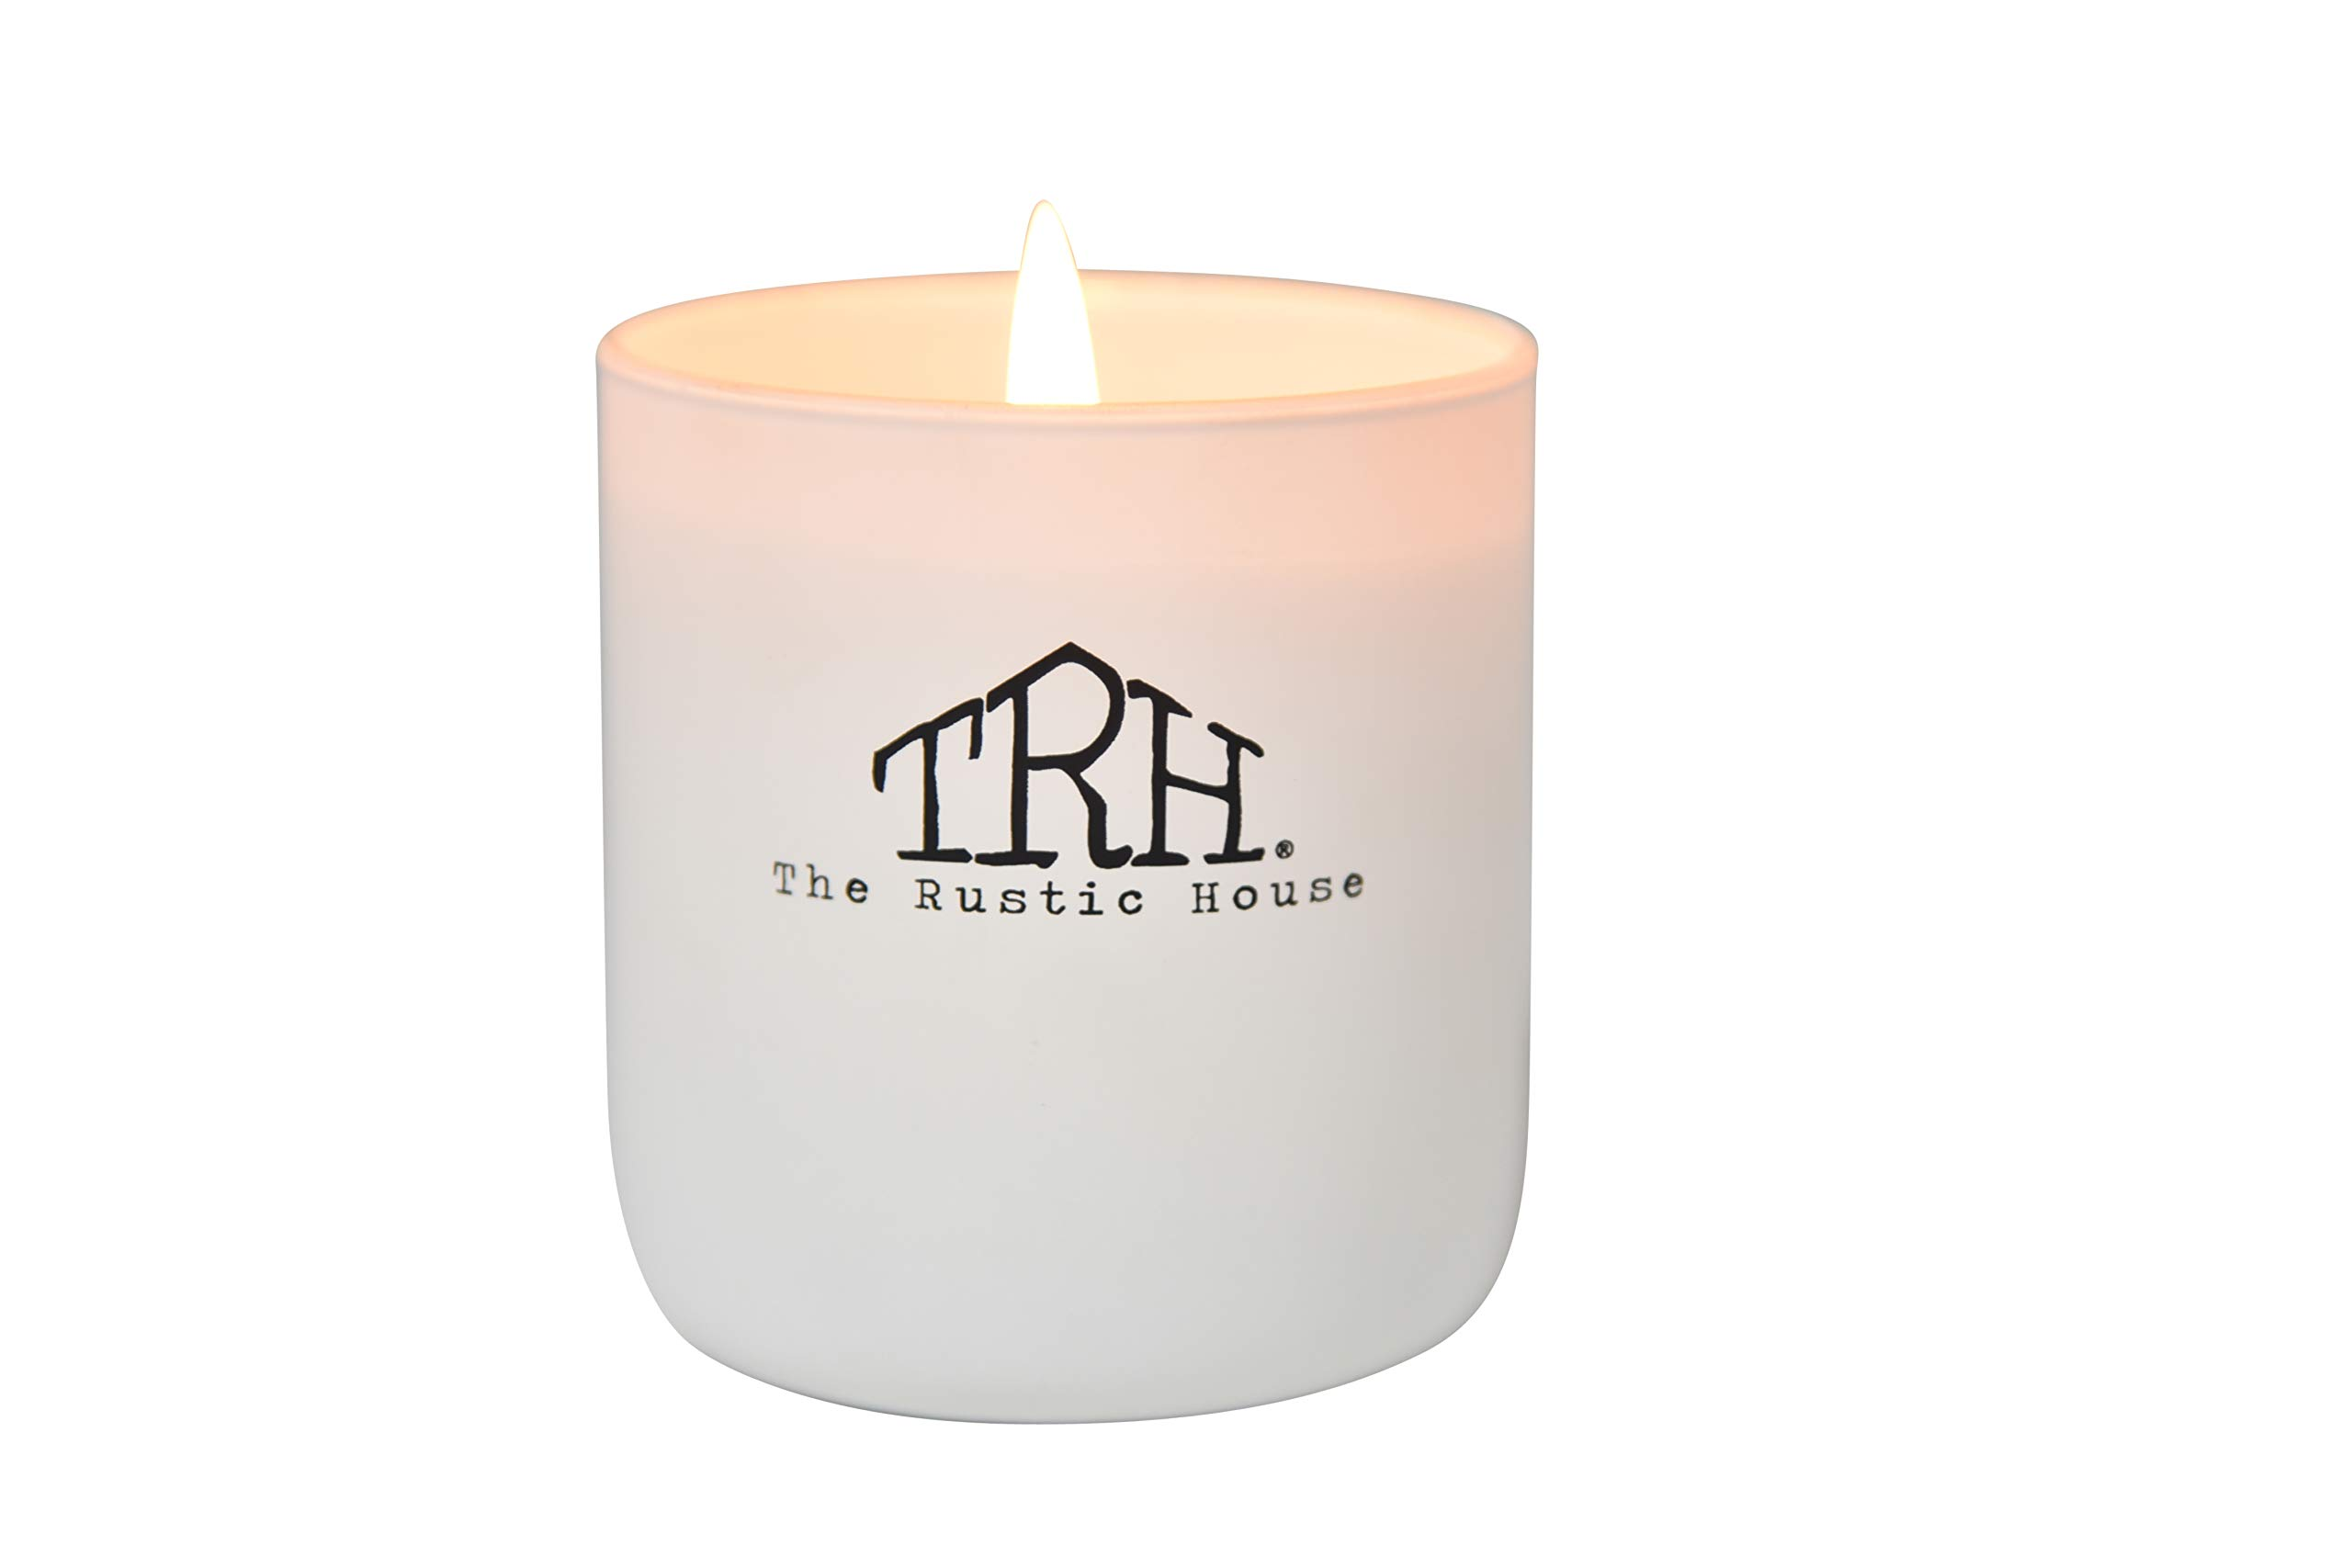 Rosewood Amber   Hand Poured   Dye + Additive Free   Environmentally Friendly   Strong Scent Throw   Soy Wax   Glass Candle   Signature Collection   The Rustic House